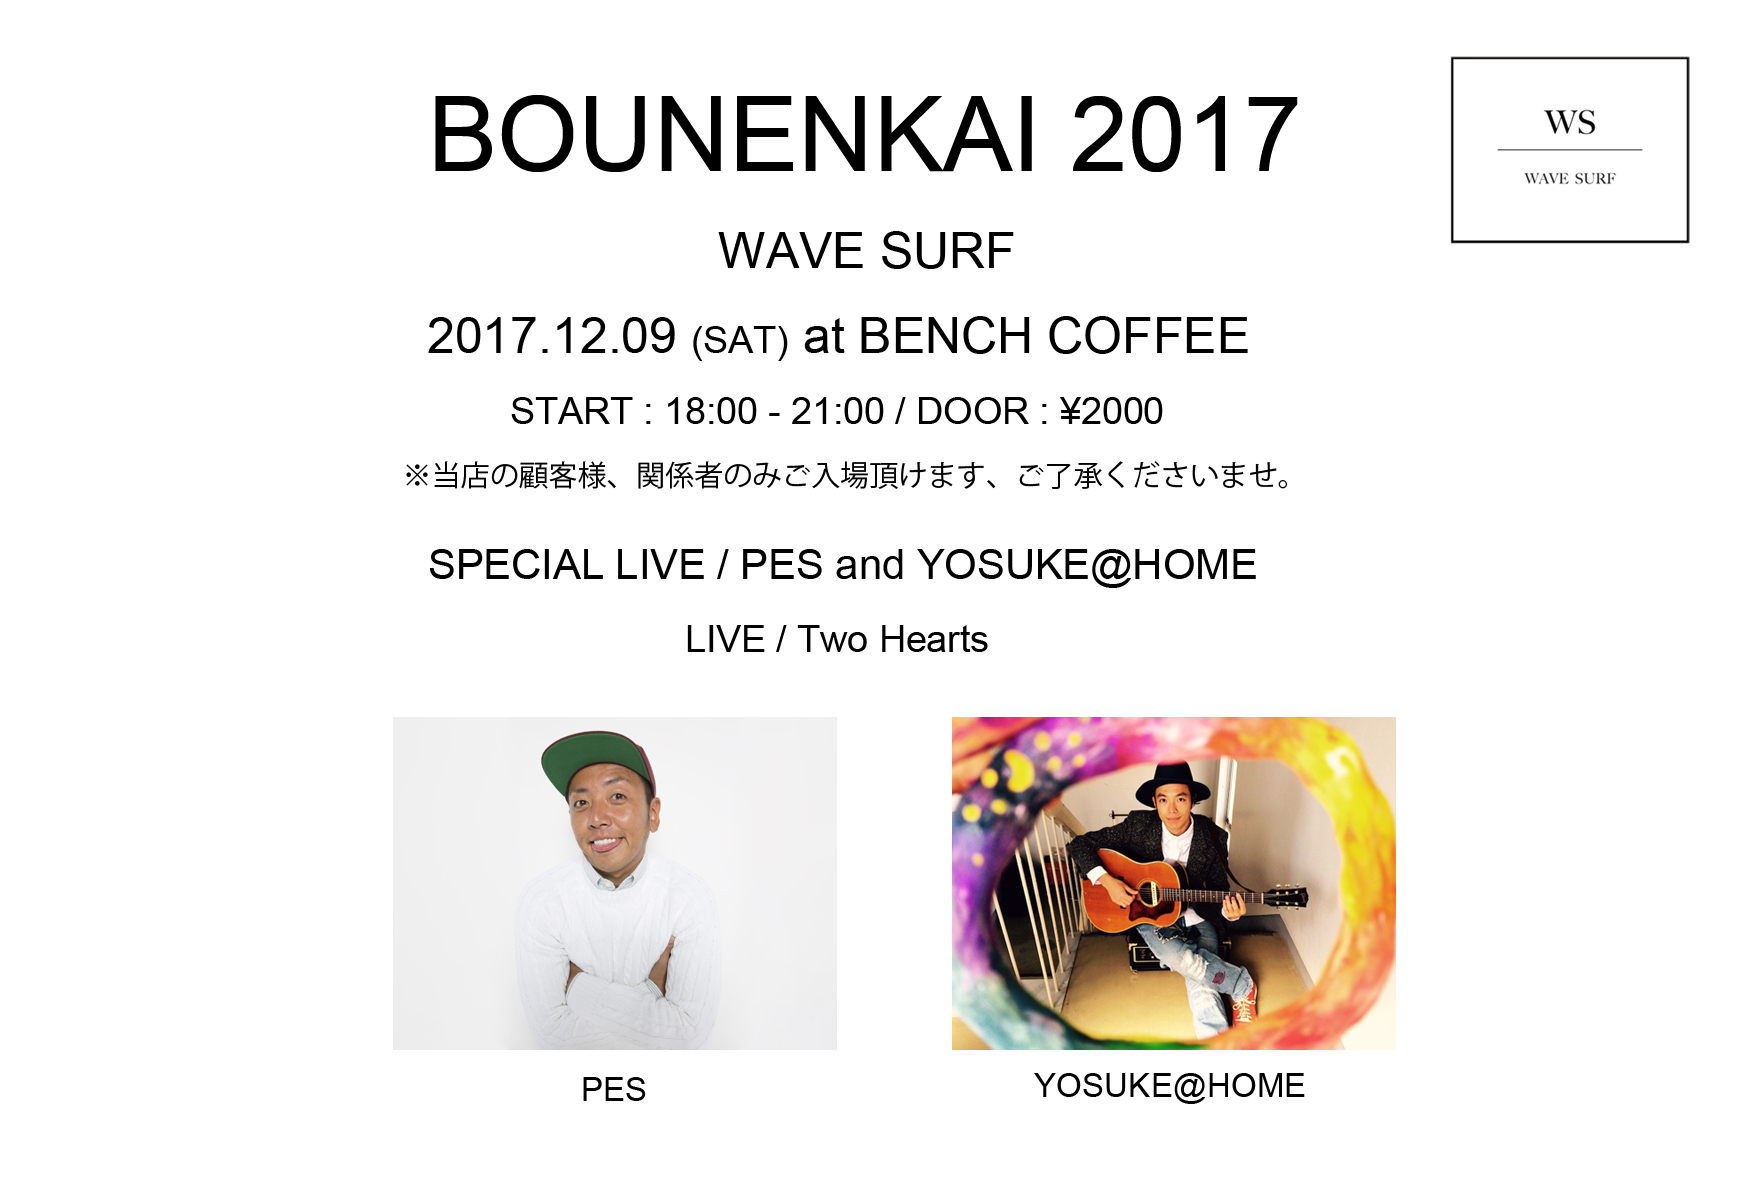 WAVE SURF & BENCH COFFEE BOUNENKAI 2017